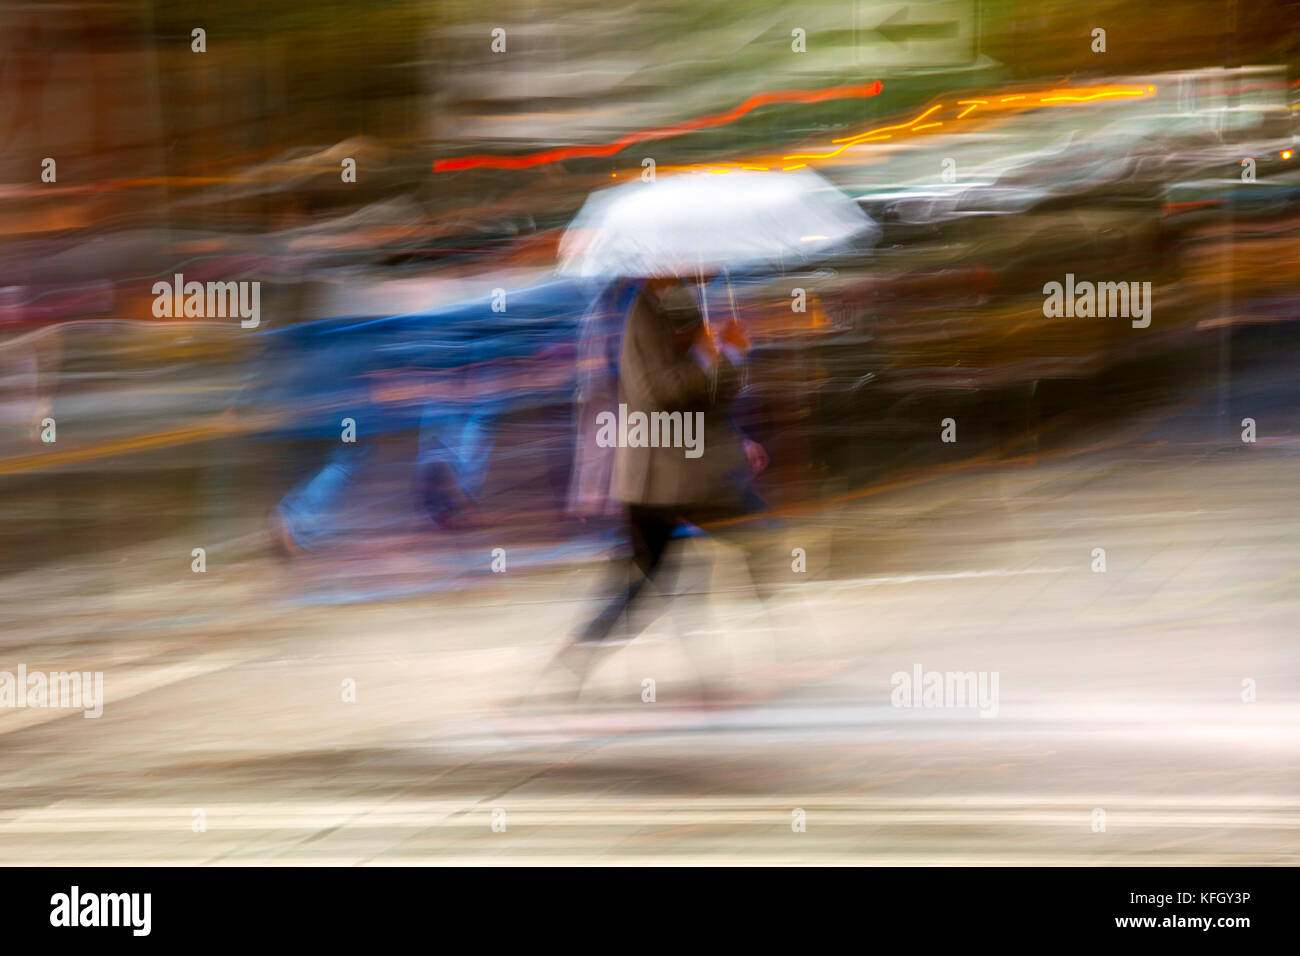 WA14186-00...WASHINGTON - Pedestrian with umbrella on a wet day in down town Seattle. (No MR) - Stock Image